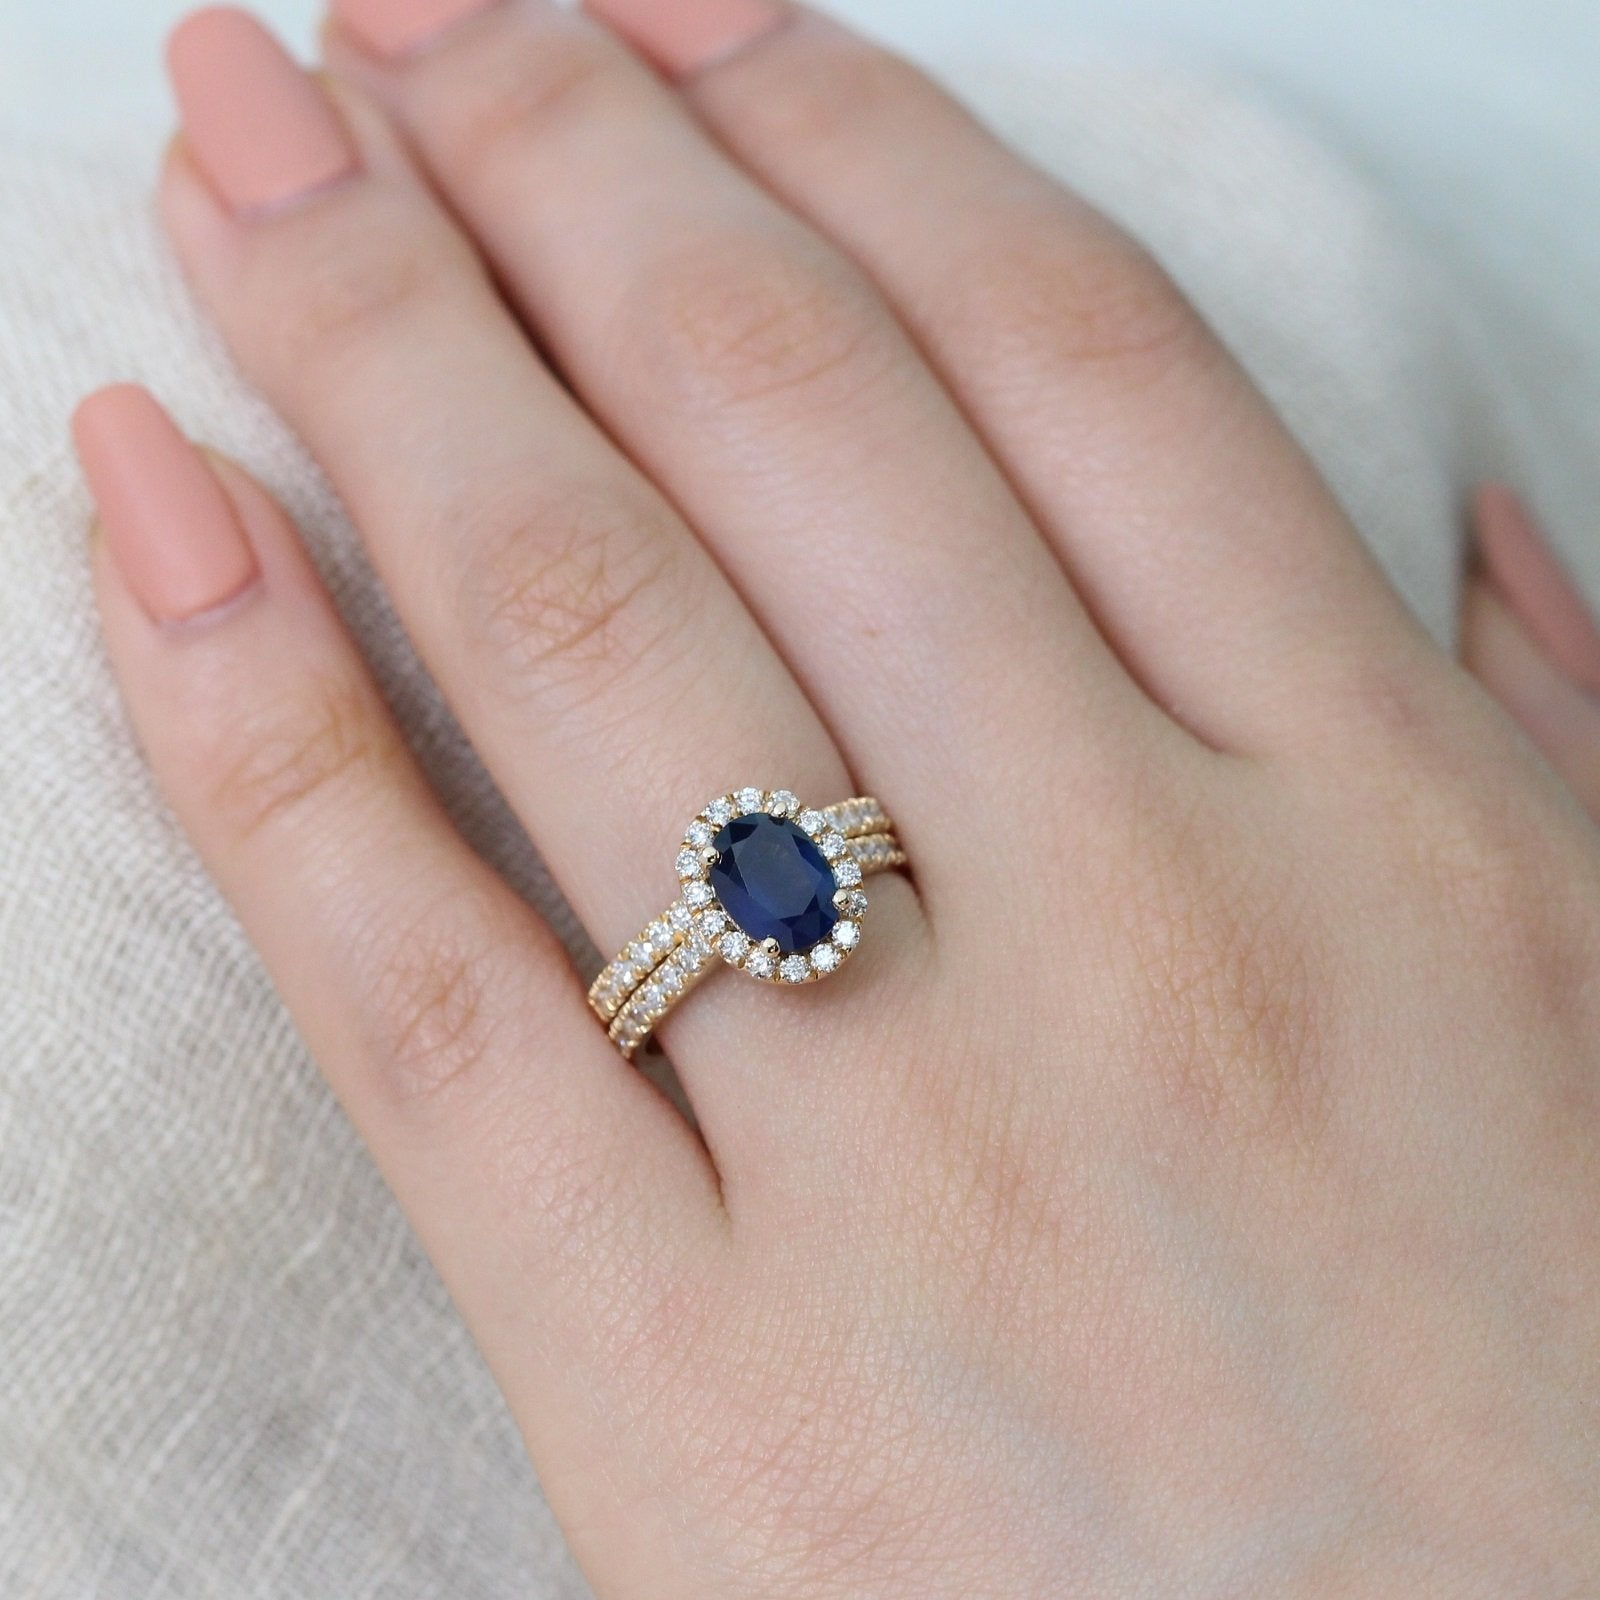 Luna Halo Pave Bridal Set w/ Oval Blue Sapphire and Diamond | La ...